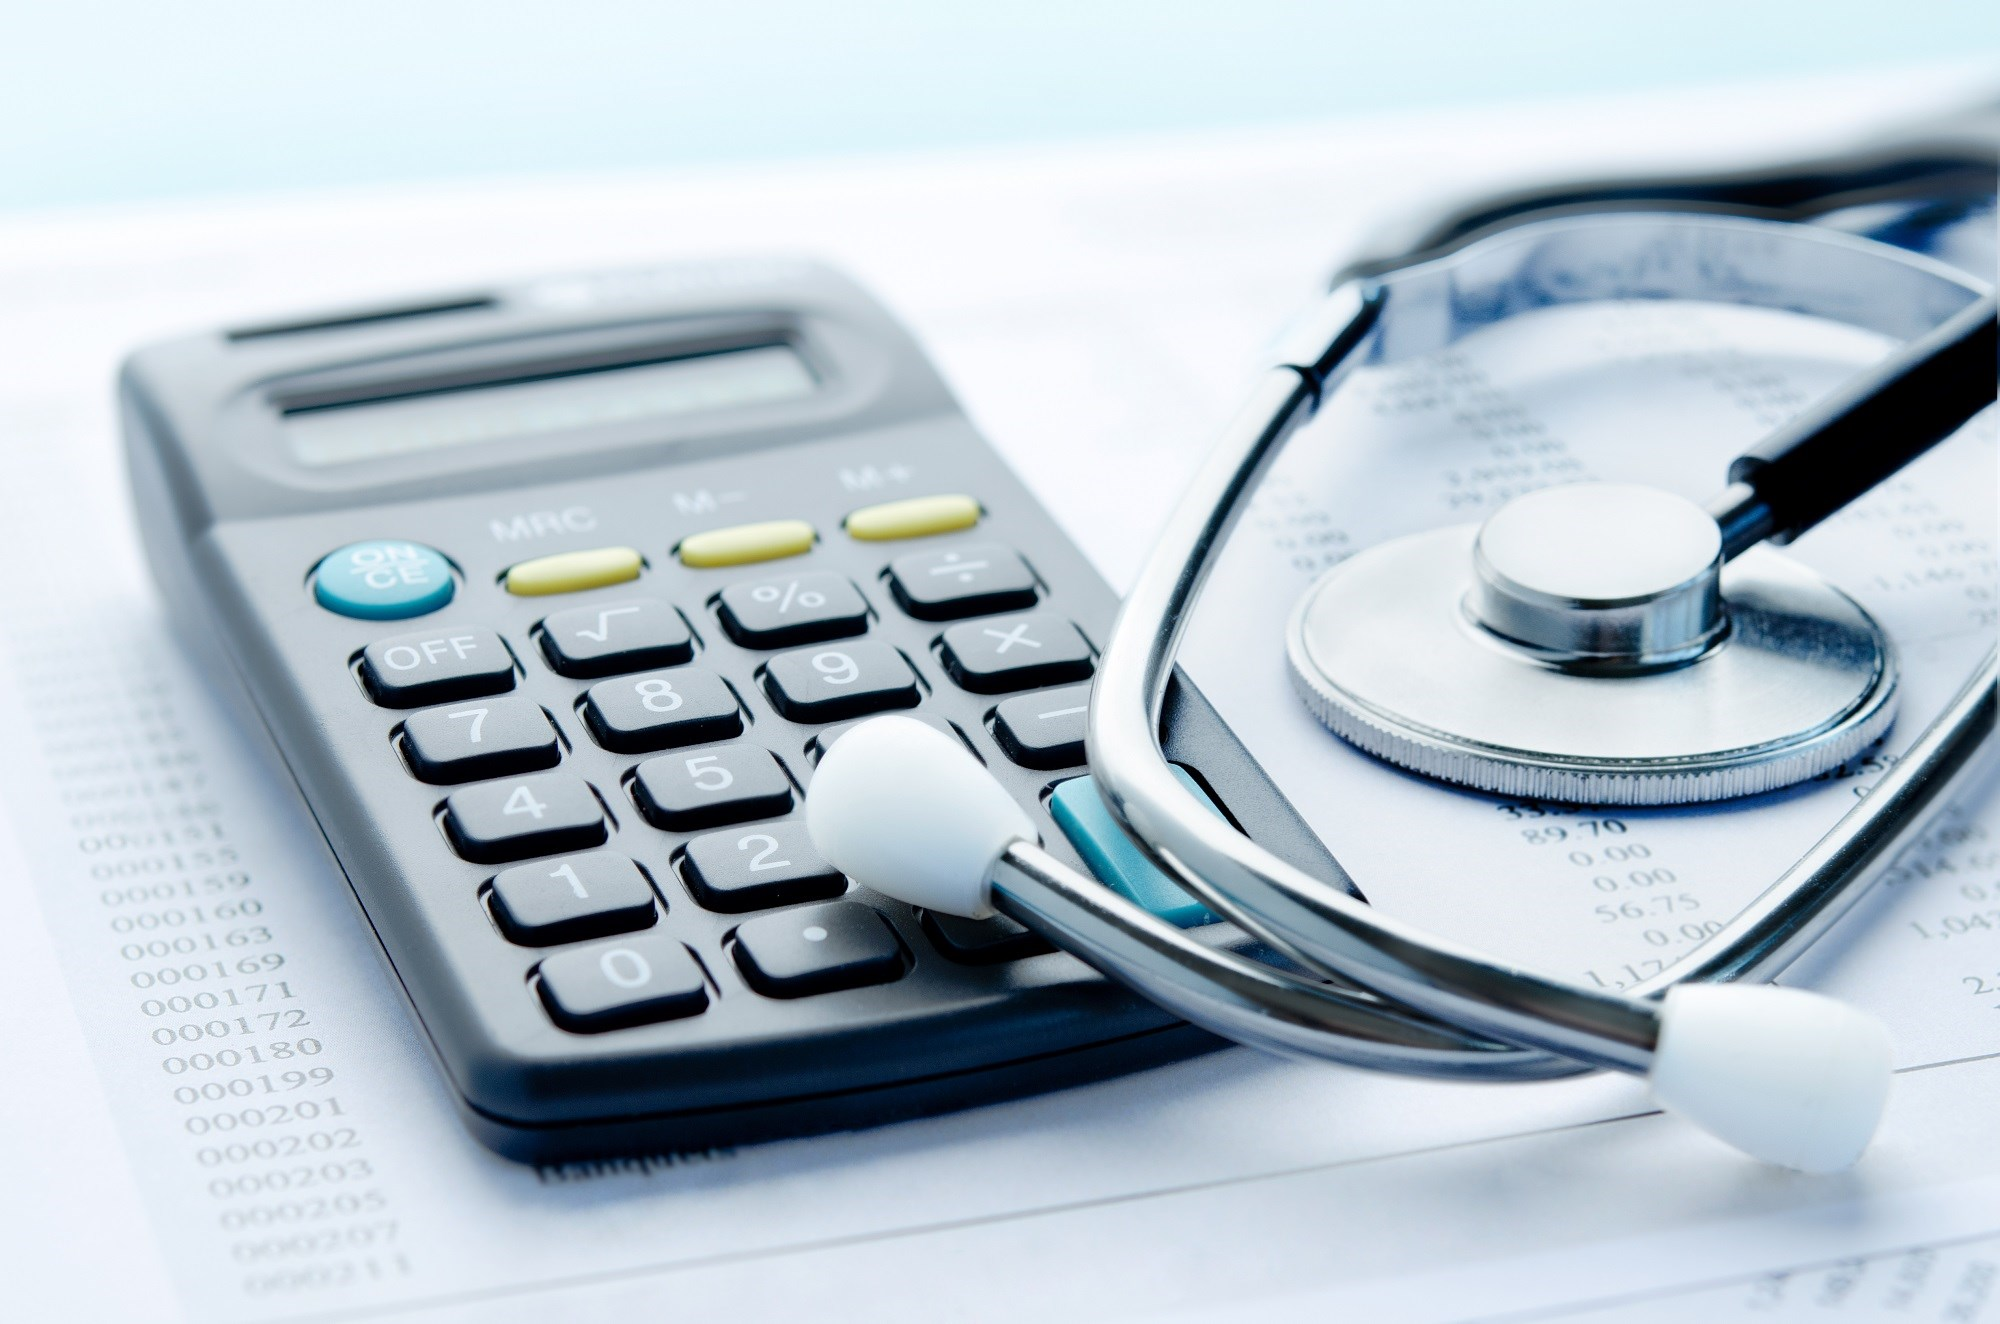 Musculoskeletal, Neurologic Diseases Constitute Largest Portion of Health System Cost